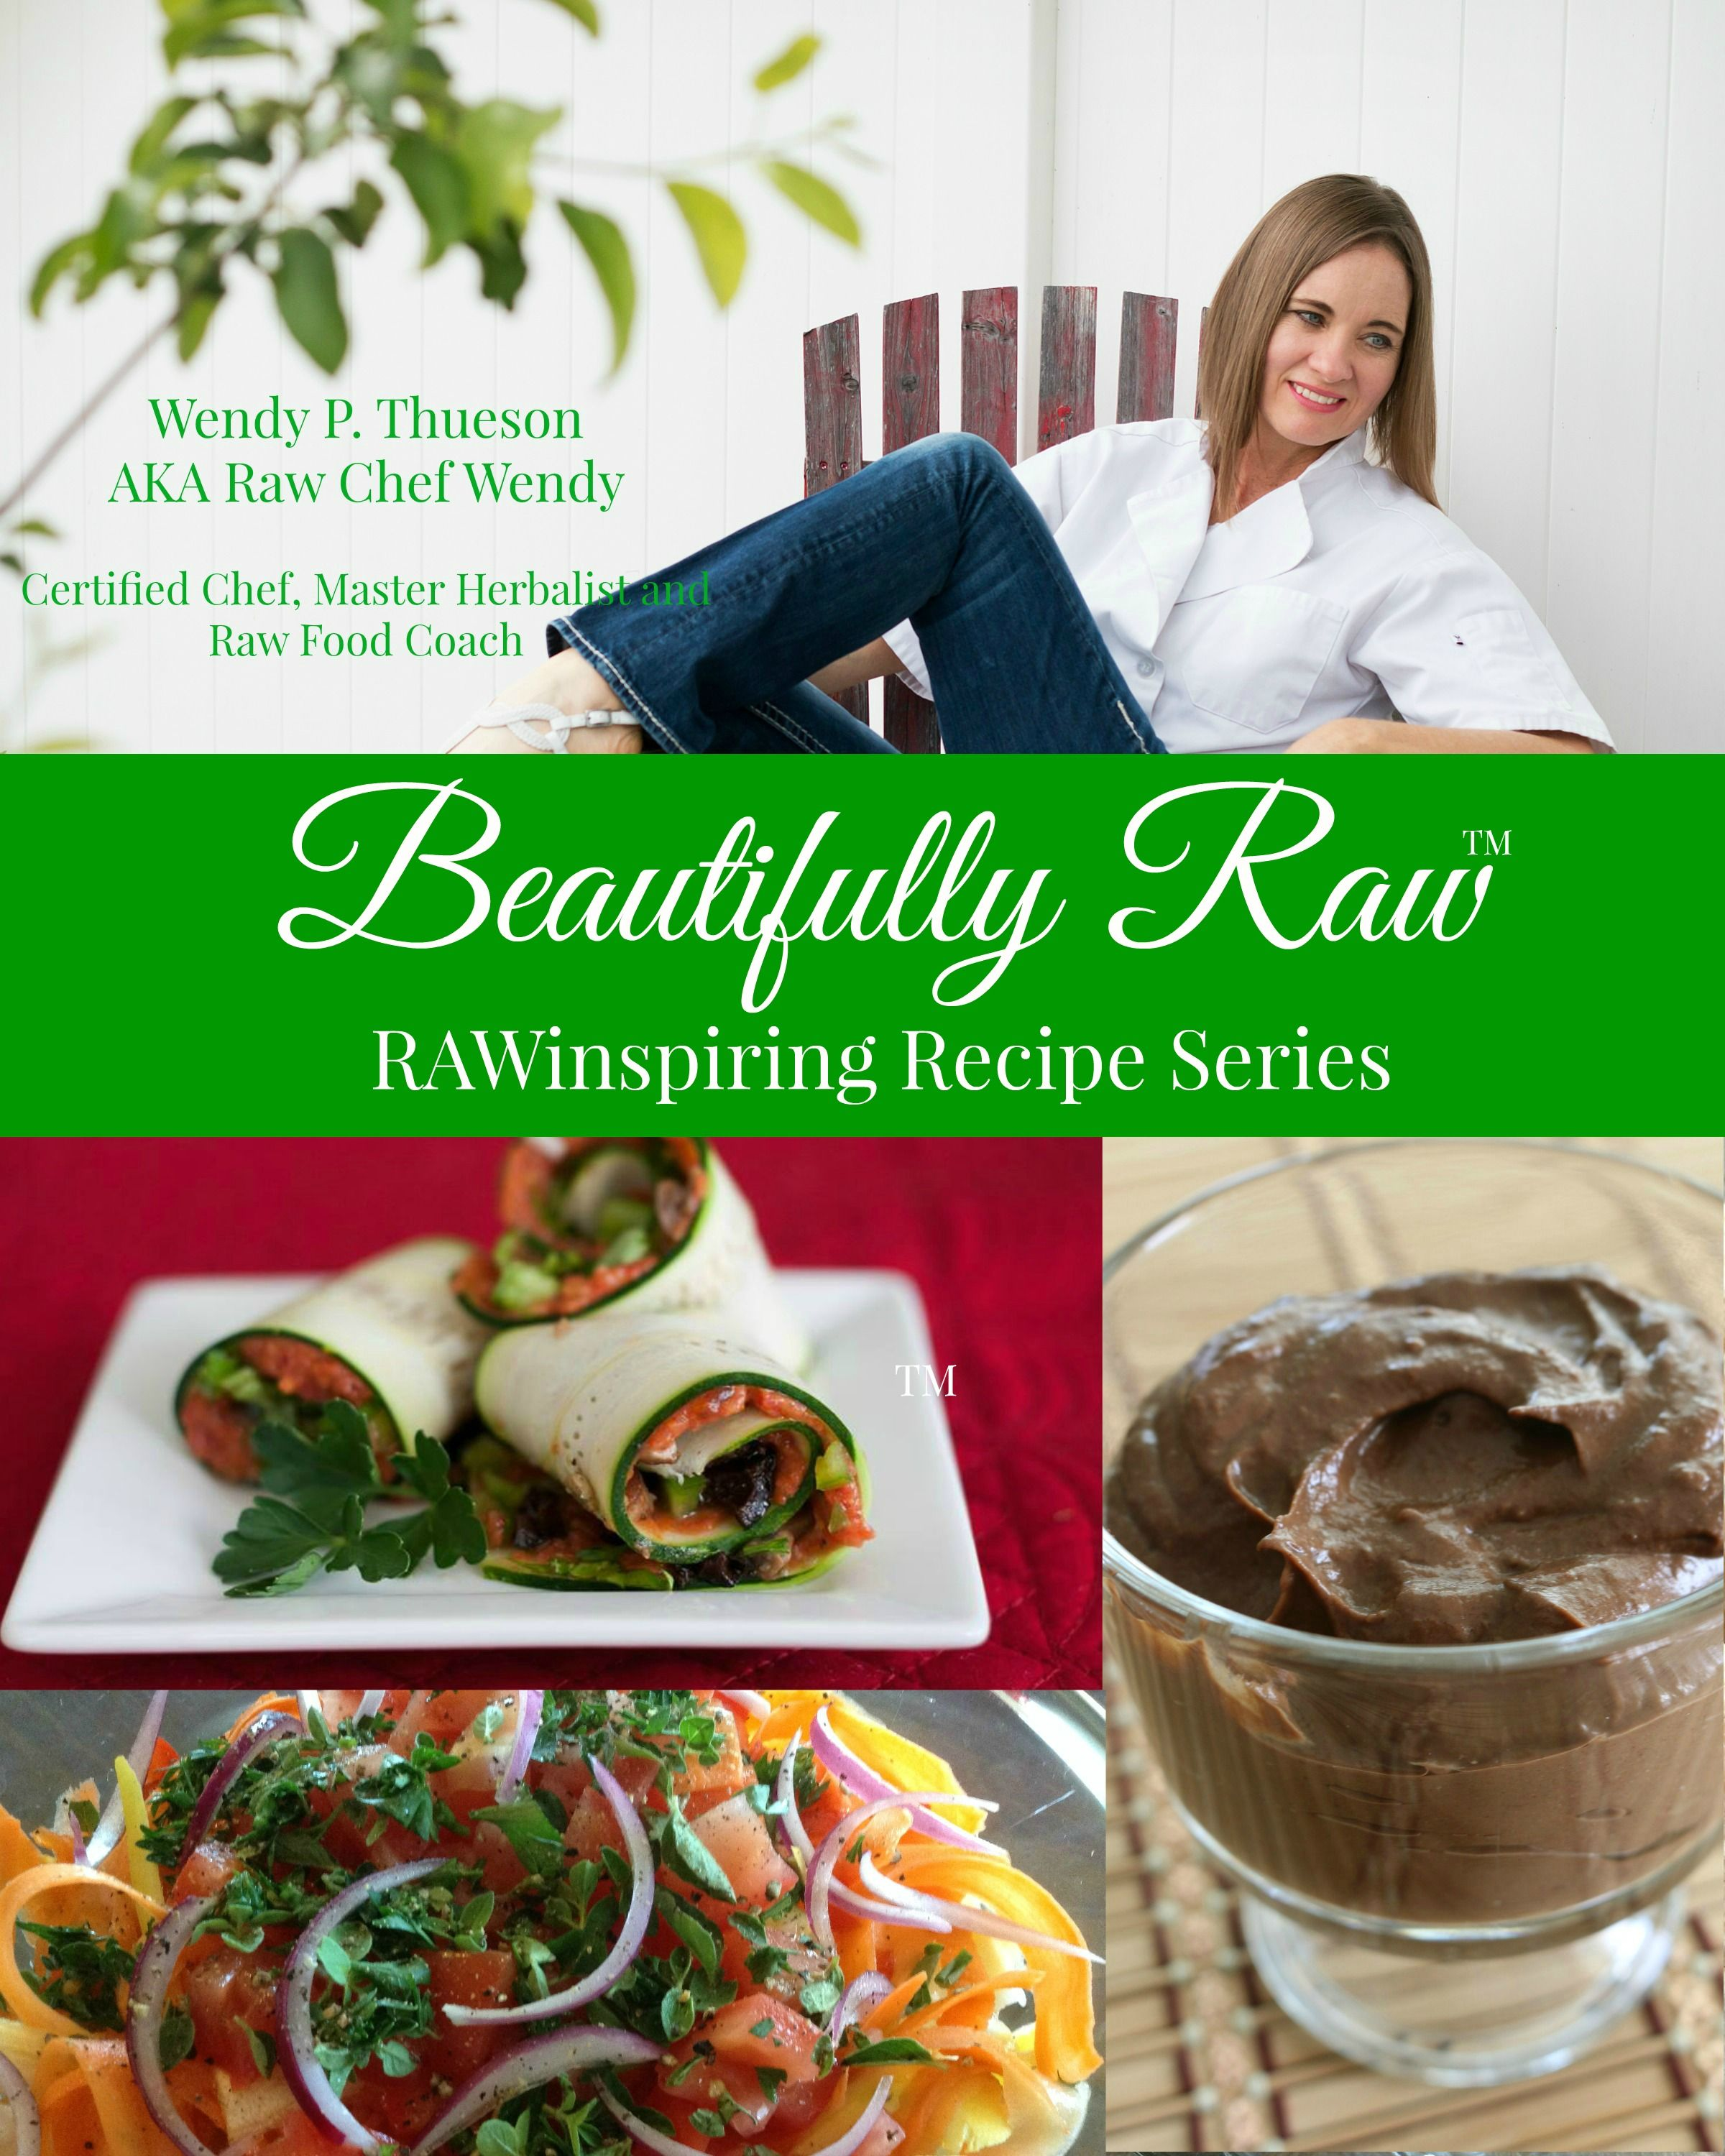 This beautifully raw recipe book contains over 100 raw plant based this beautifully raw recipe book contains over 100 raw plant based whole food forumfinder Gallery